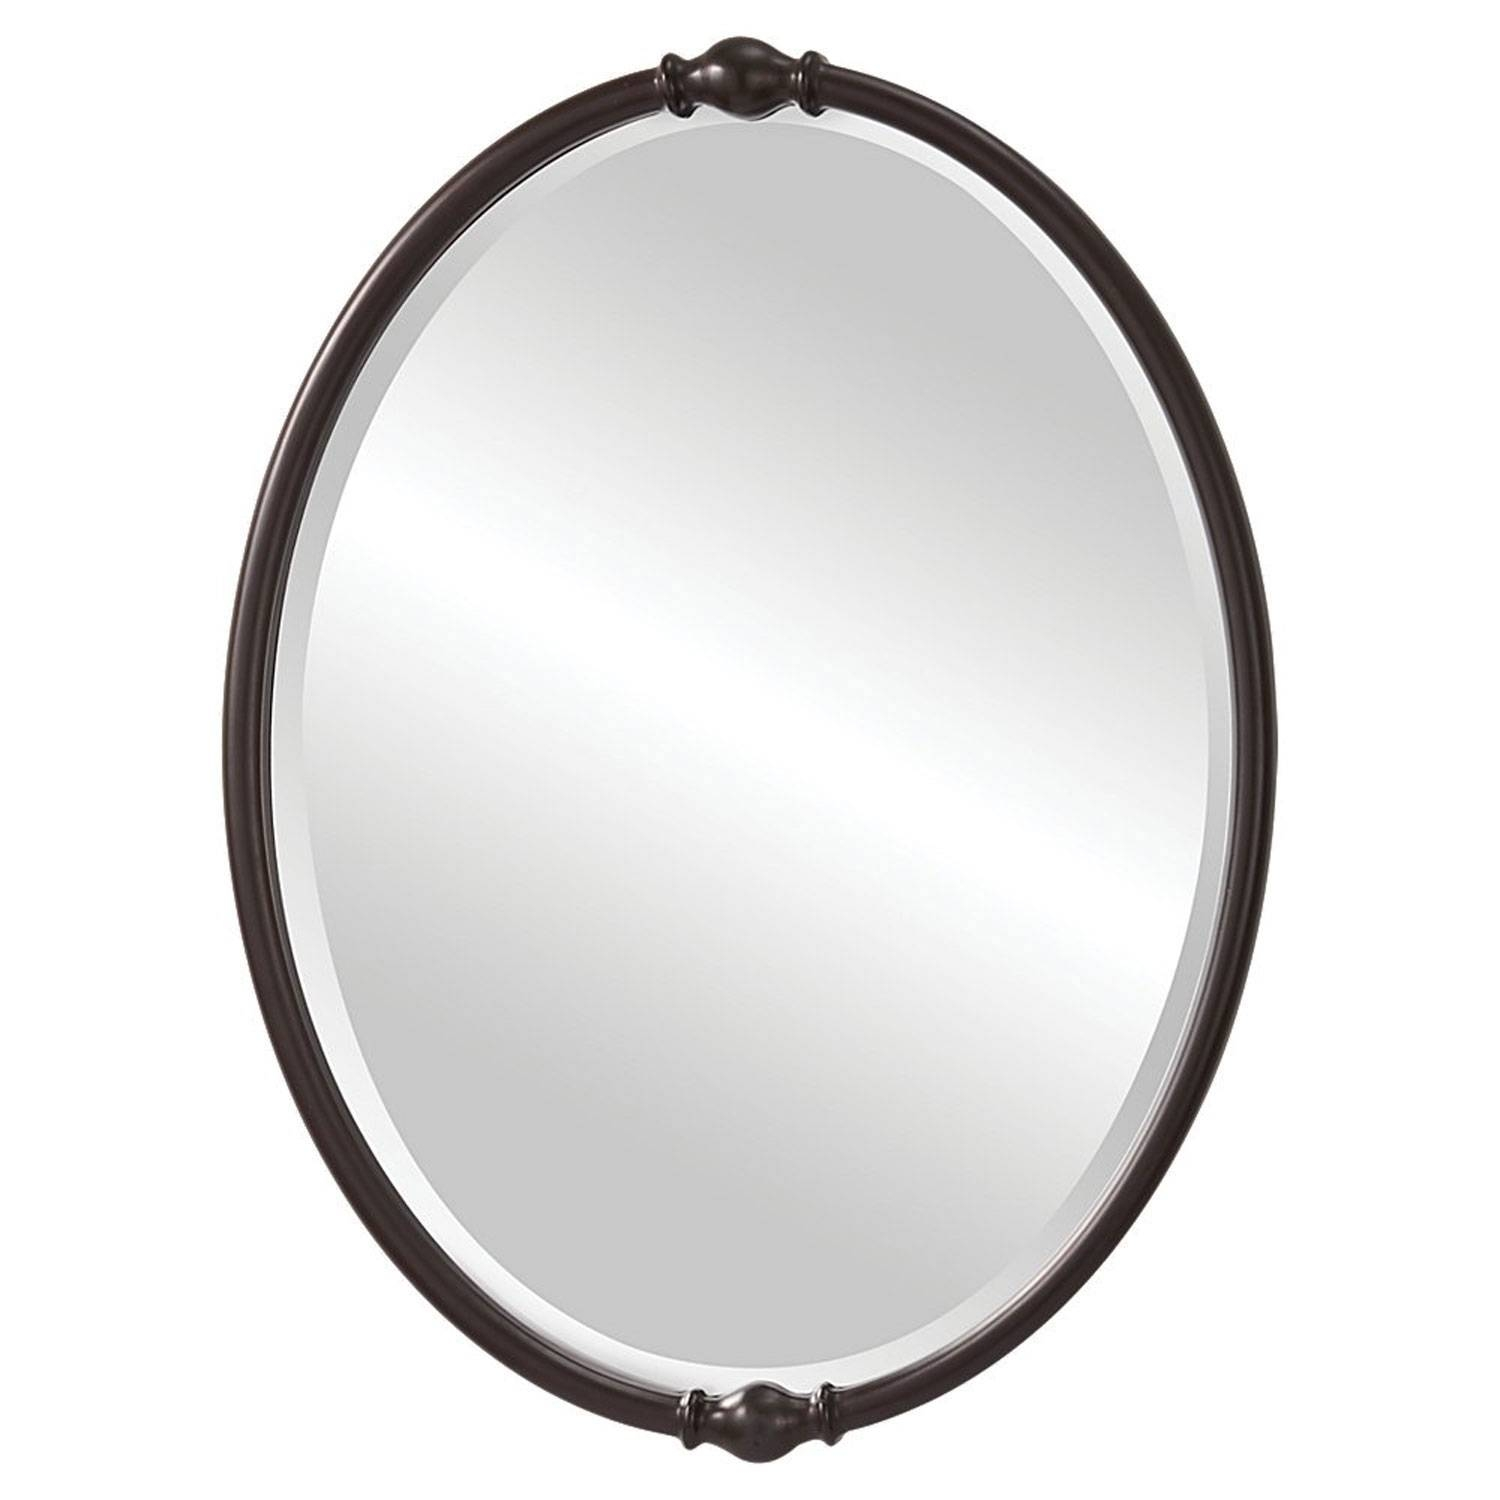 Jackie Oil Rubbed Bronze Mirror Feiss Wall Mirror Mirrors Home Decor regarding Bronze Wall Mirrors (Image 10 of 25)